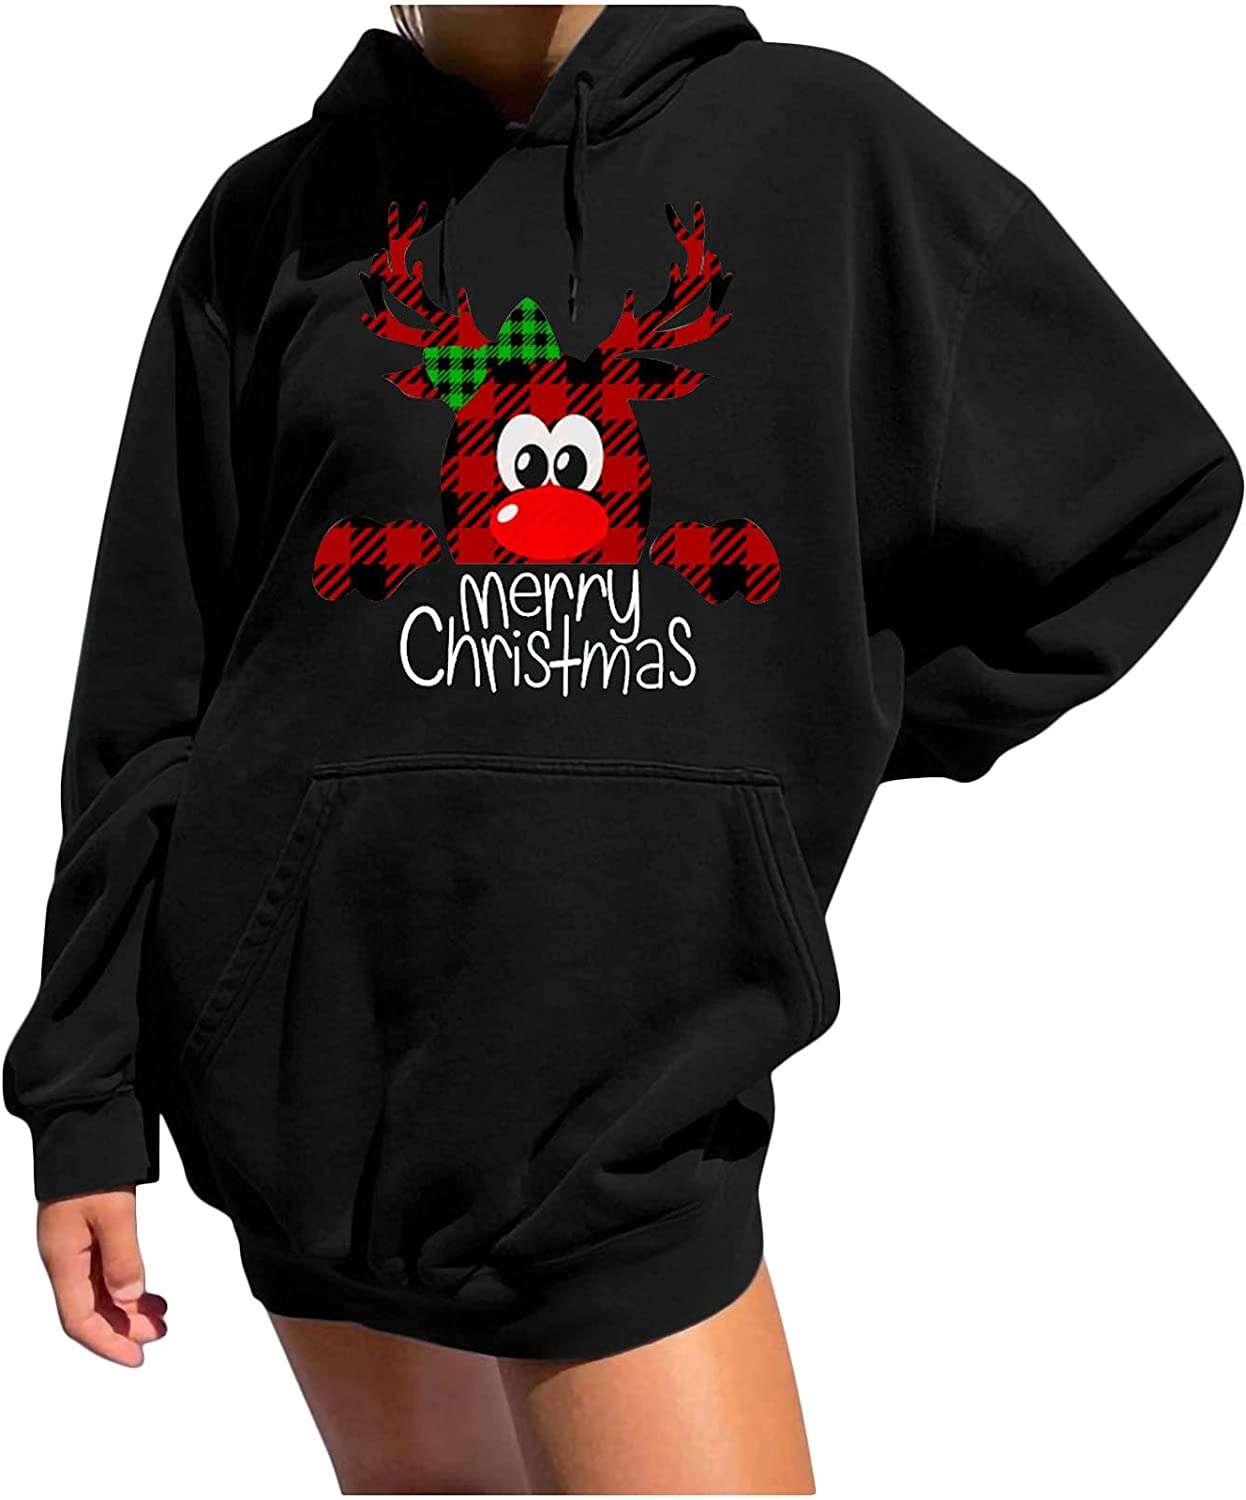 Women Casual Hooded At the price of OFFicial shop surprise Sweatshirt Christmas Printing Sleeve Ho Long